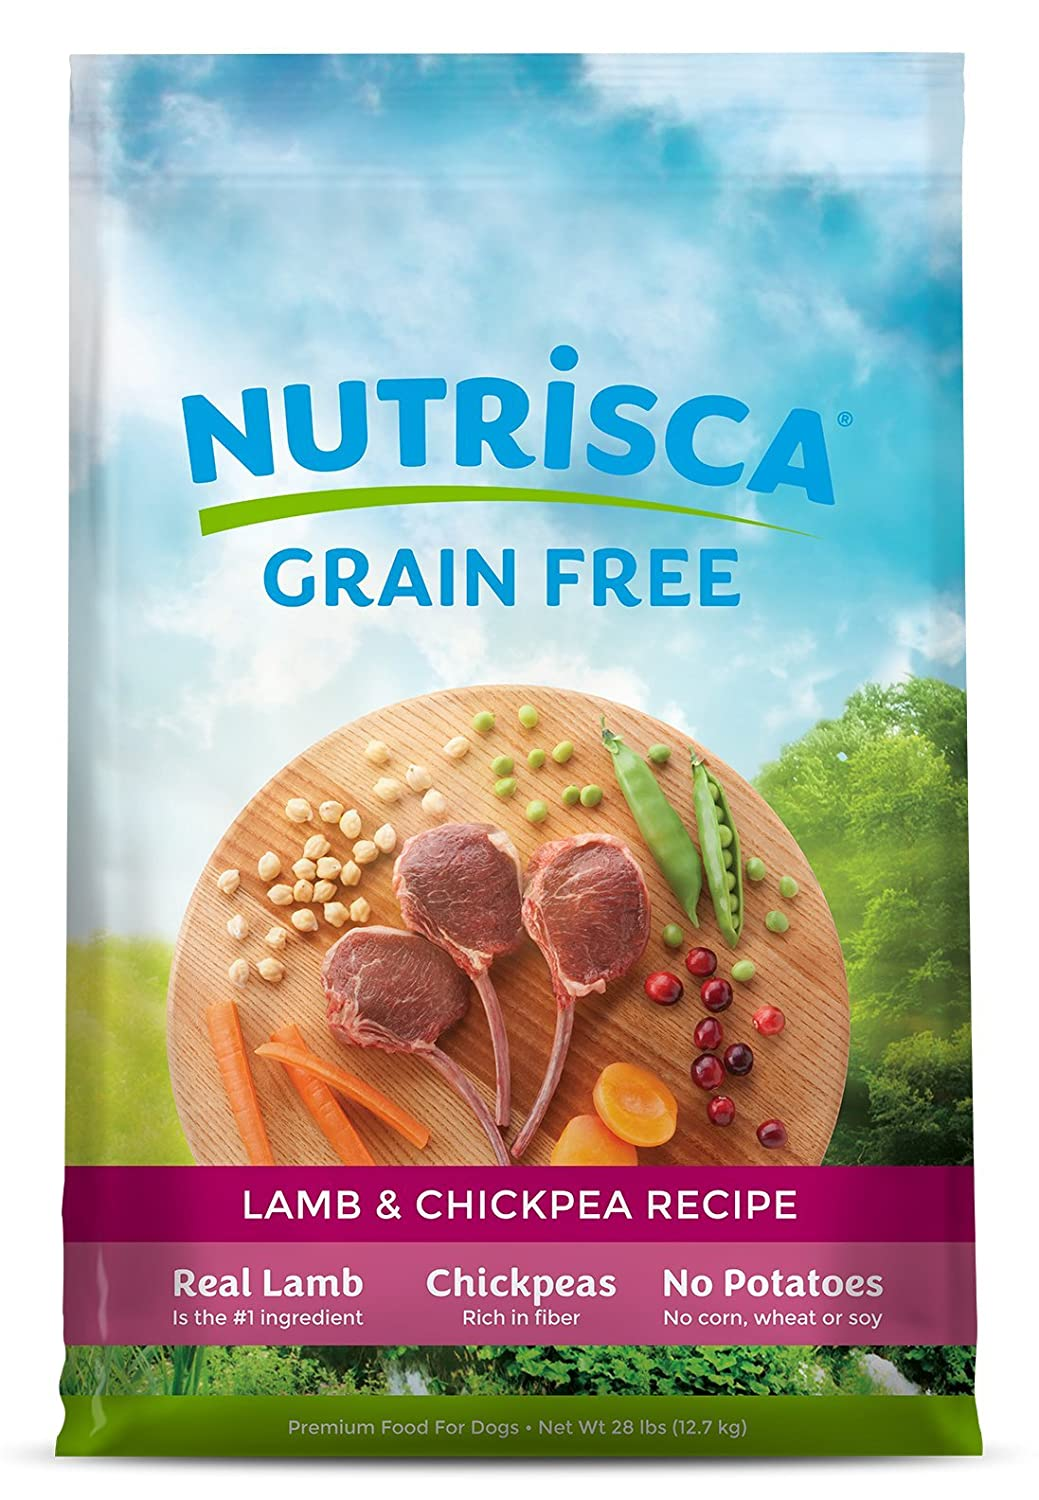 Nutrisca Grain-free Dry Dog Food